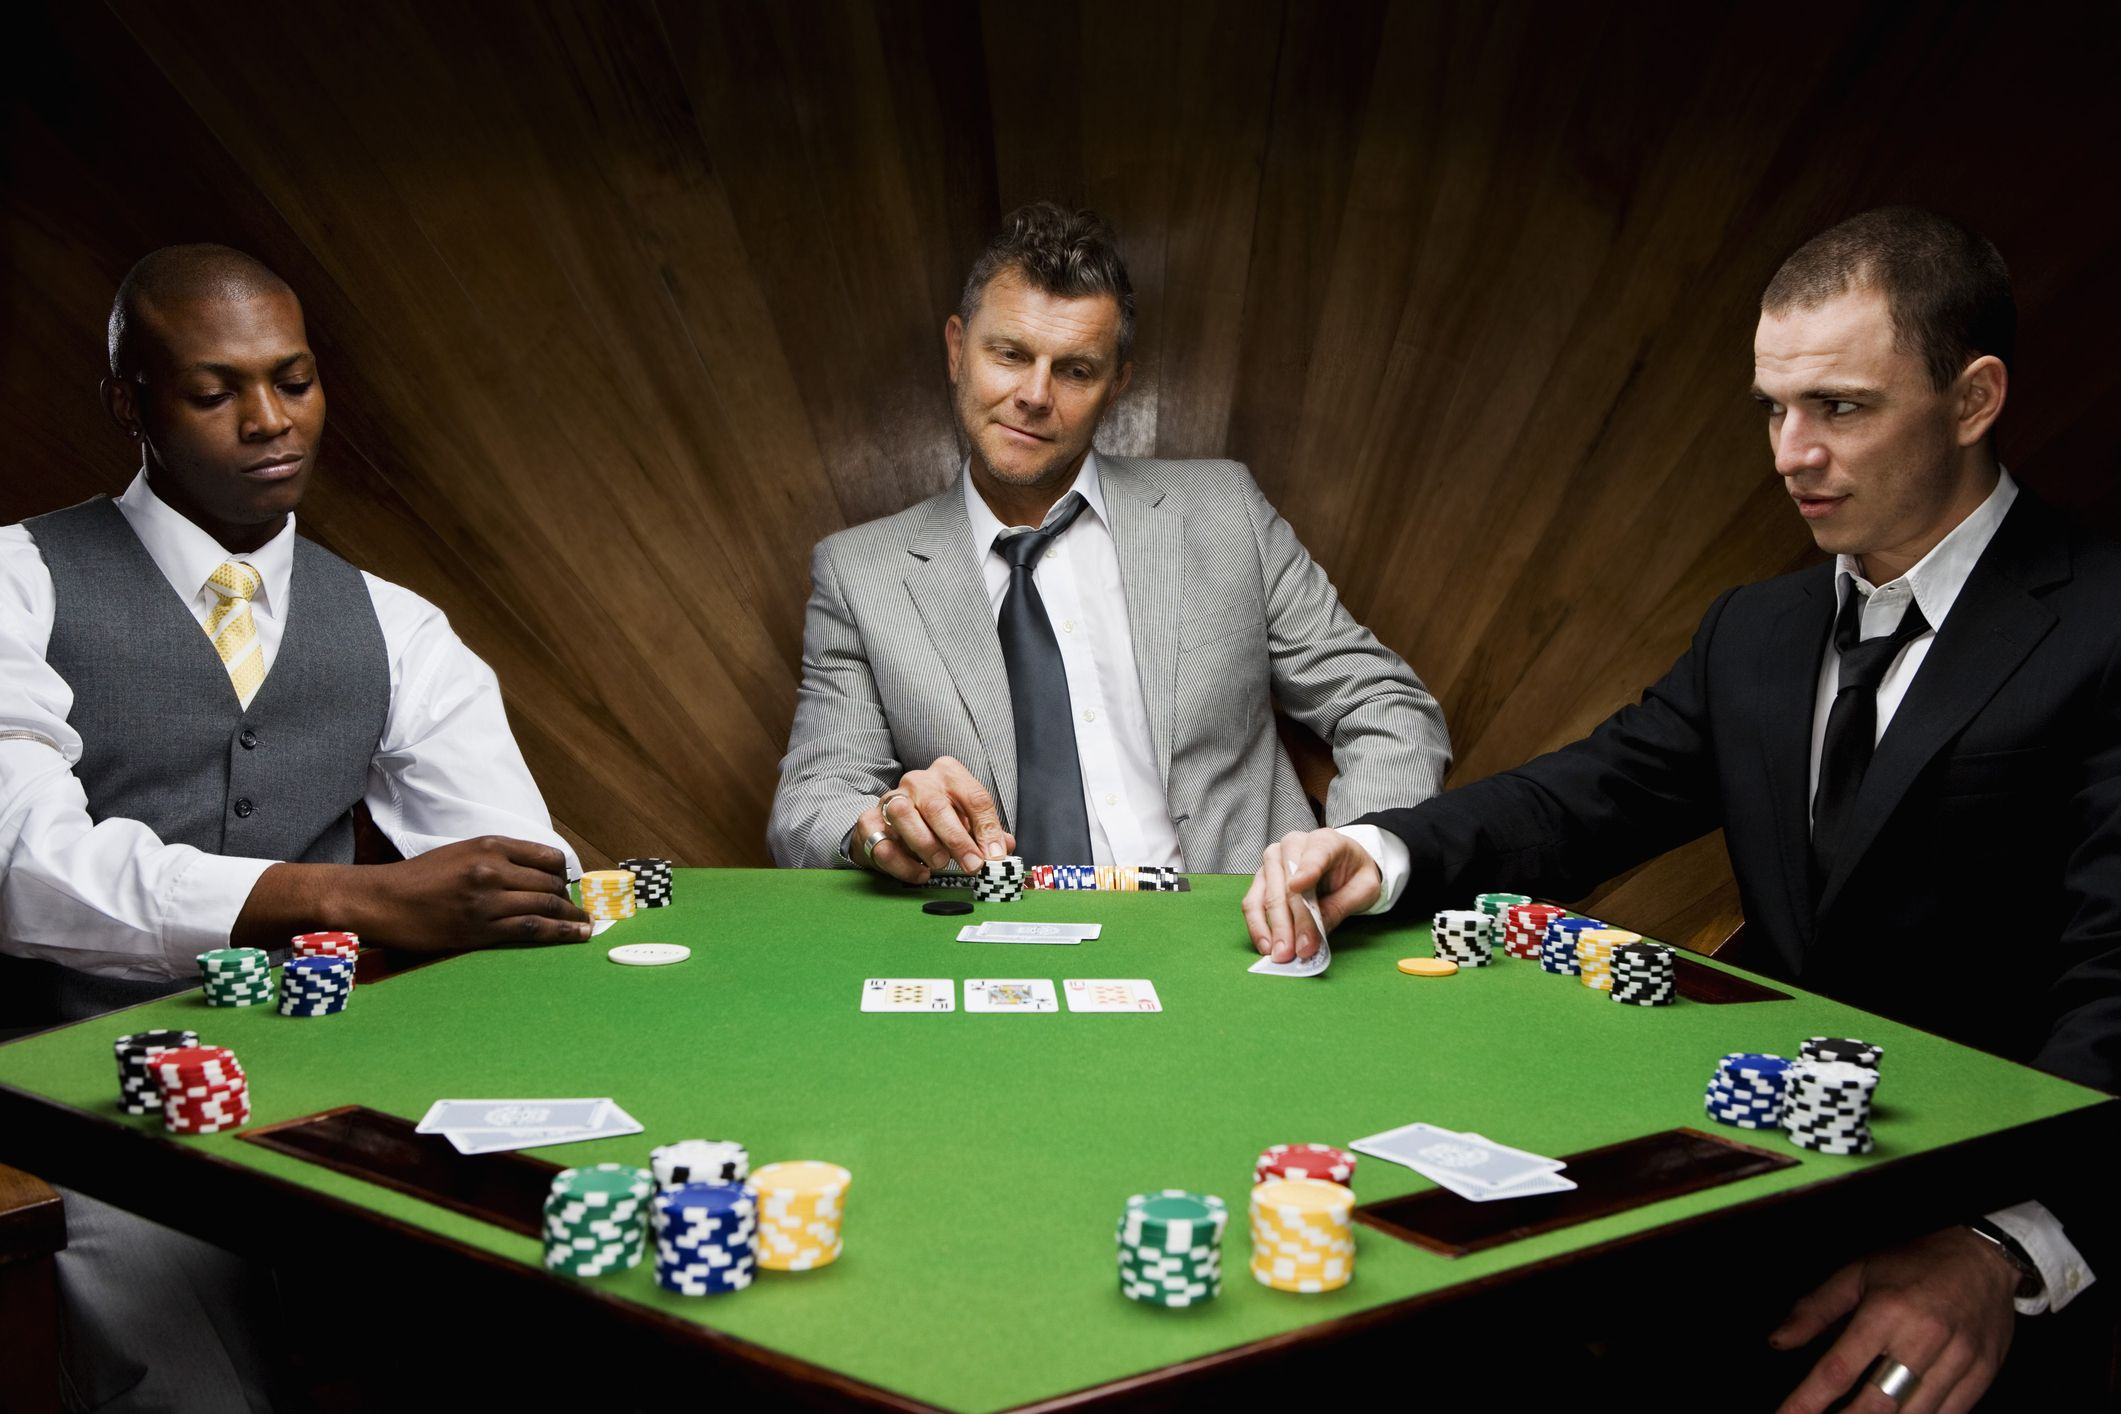 What Is the Cutoff Seat in Poker?